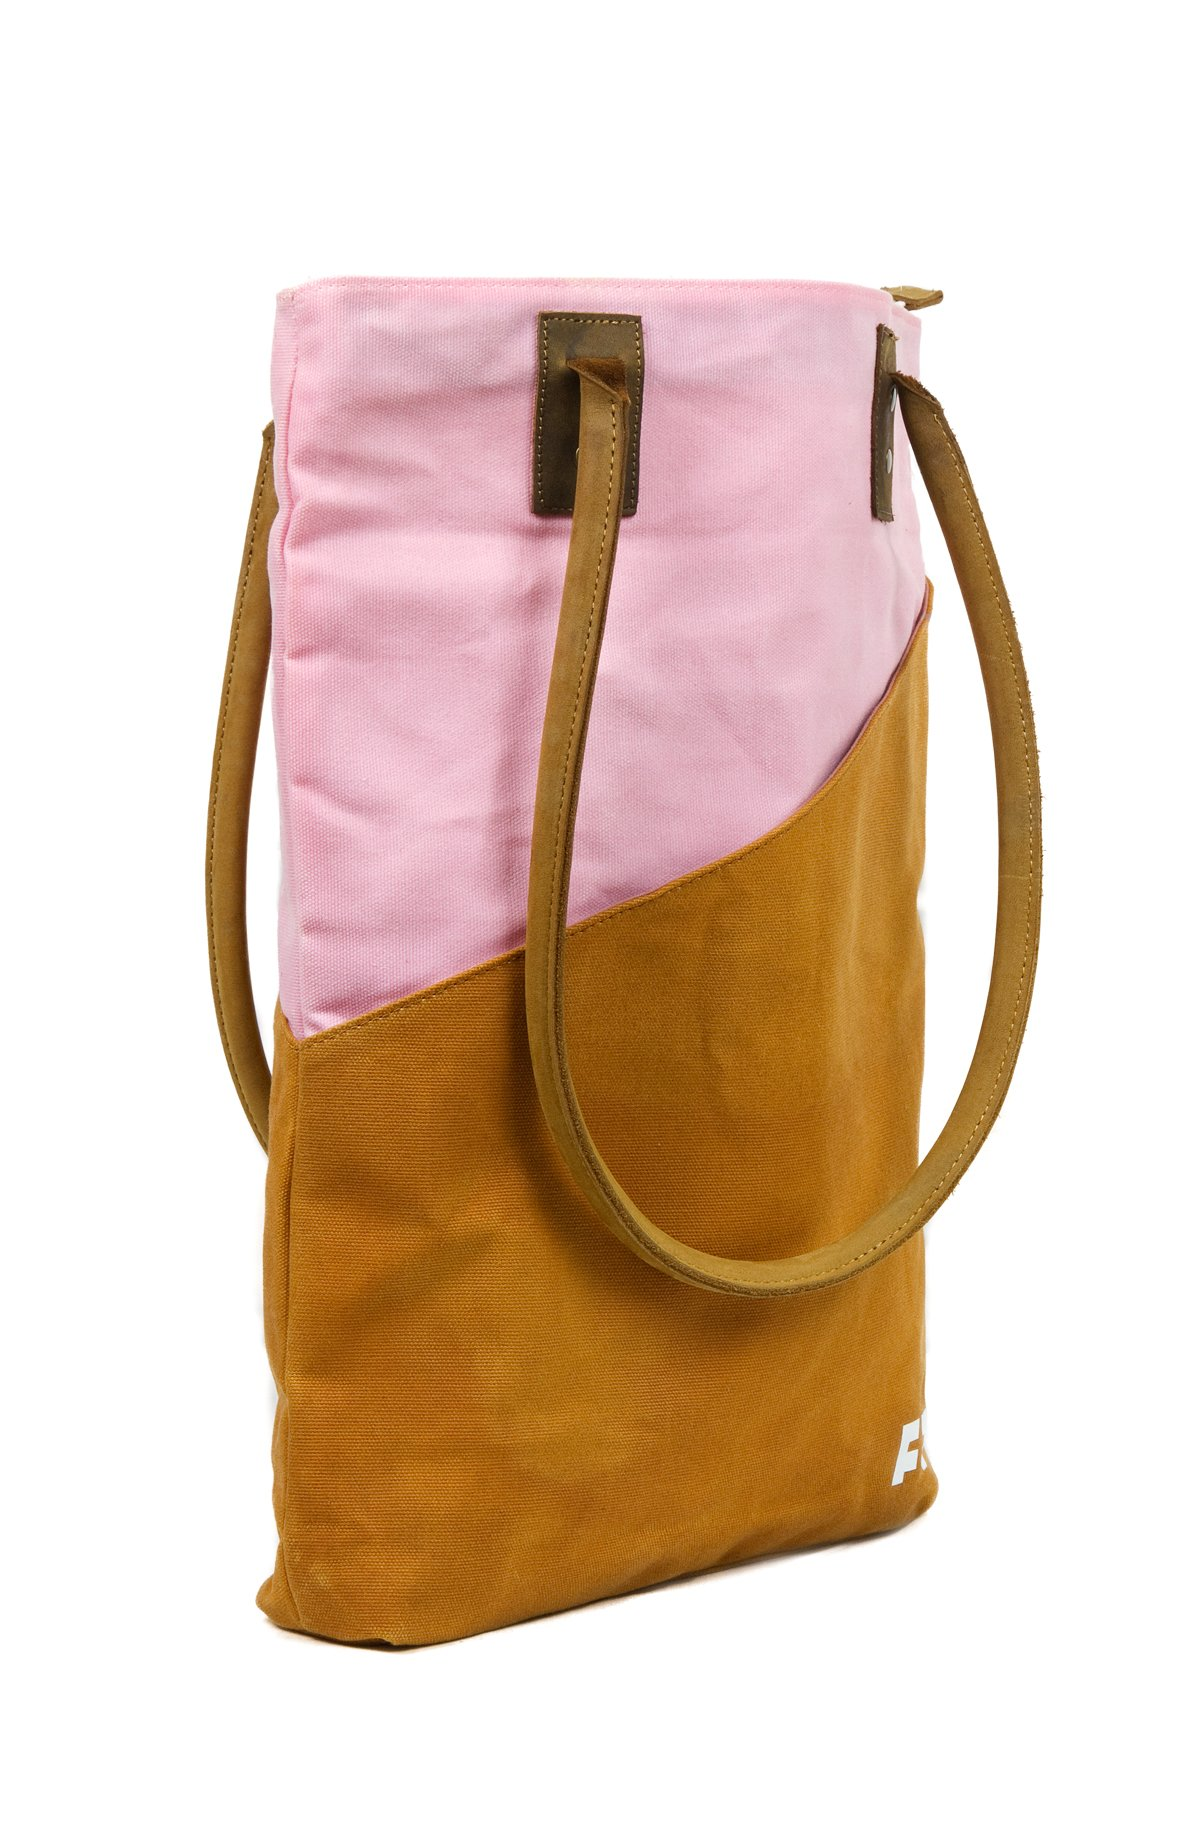 Large Waxed Canvas Tote Bag for Women | the JOPLIN TALL TOTE by FAT FELT (Desert) by FAT FELT (Image #2)